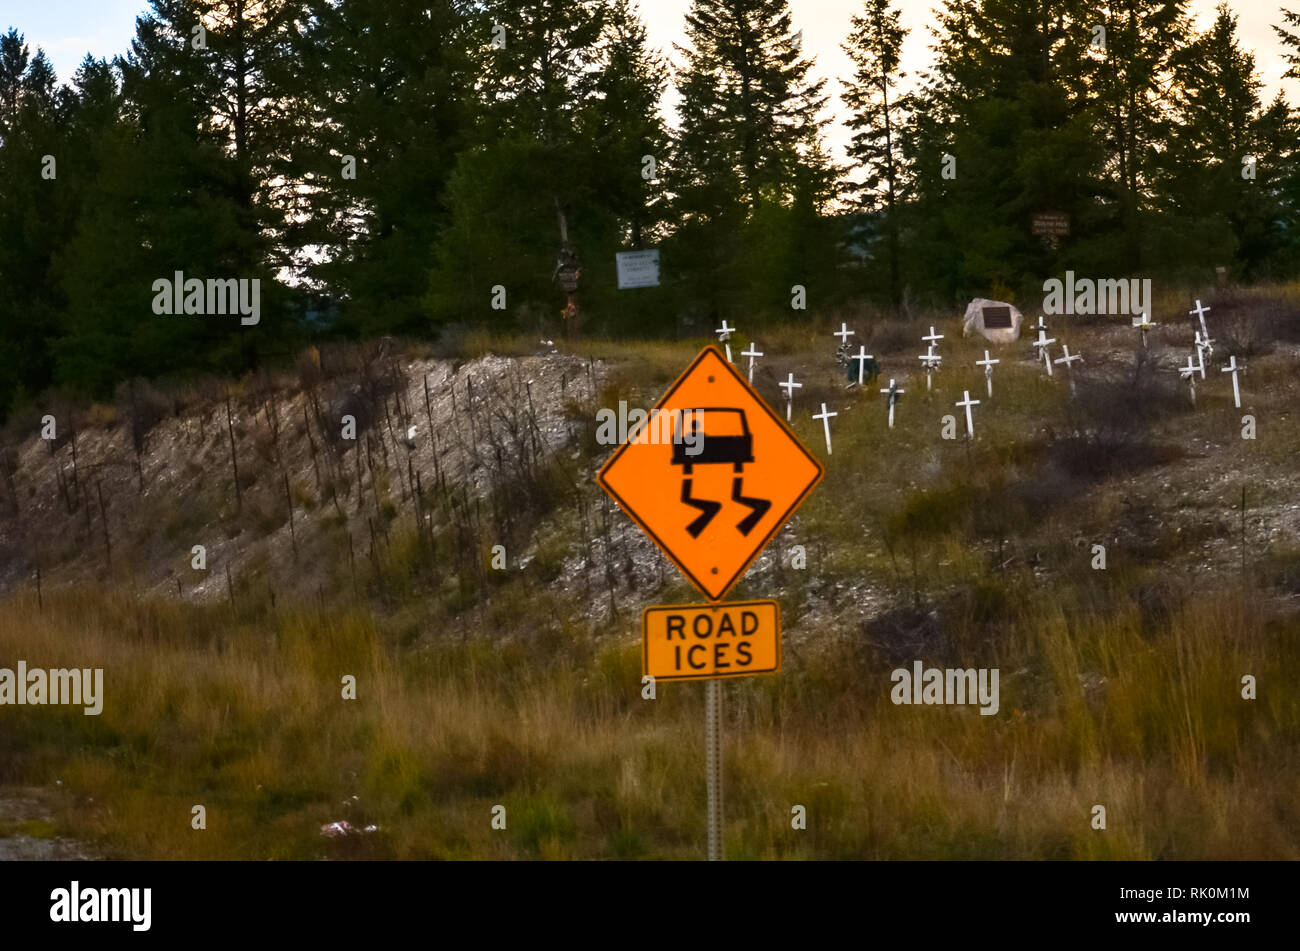 Slippery road sign with crosses on the hill behind - Stock Image